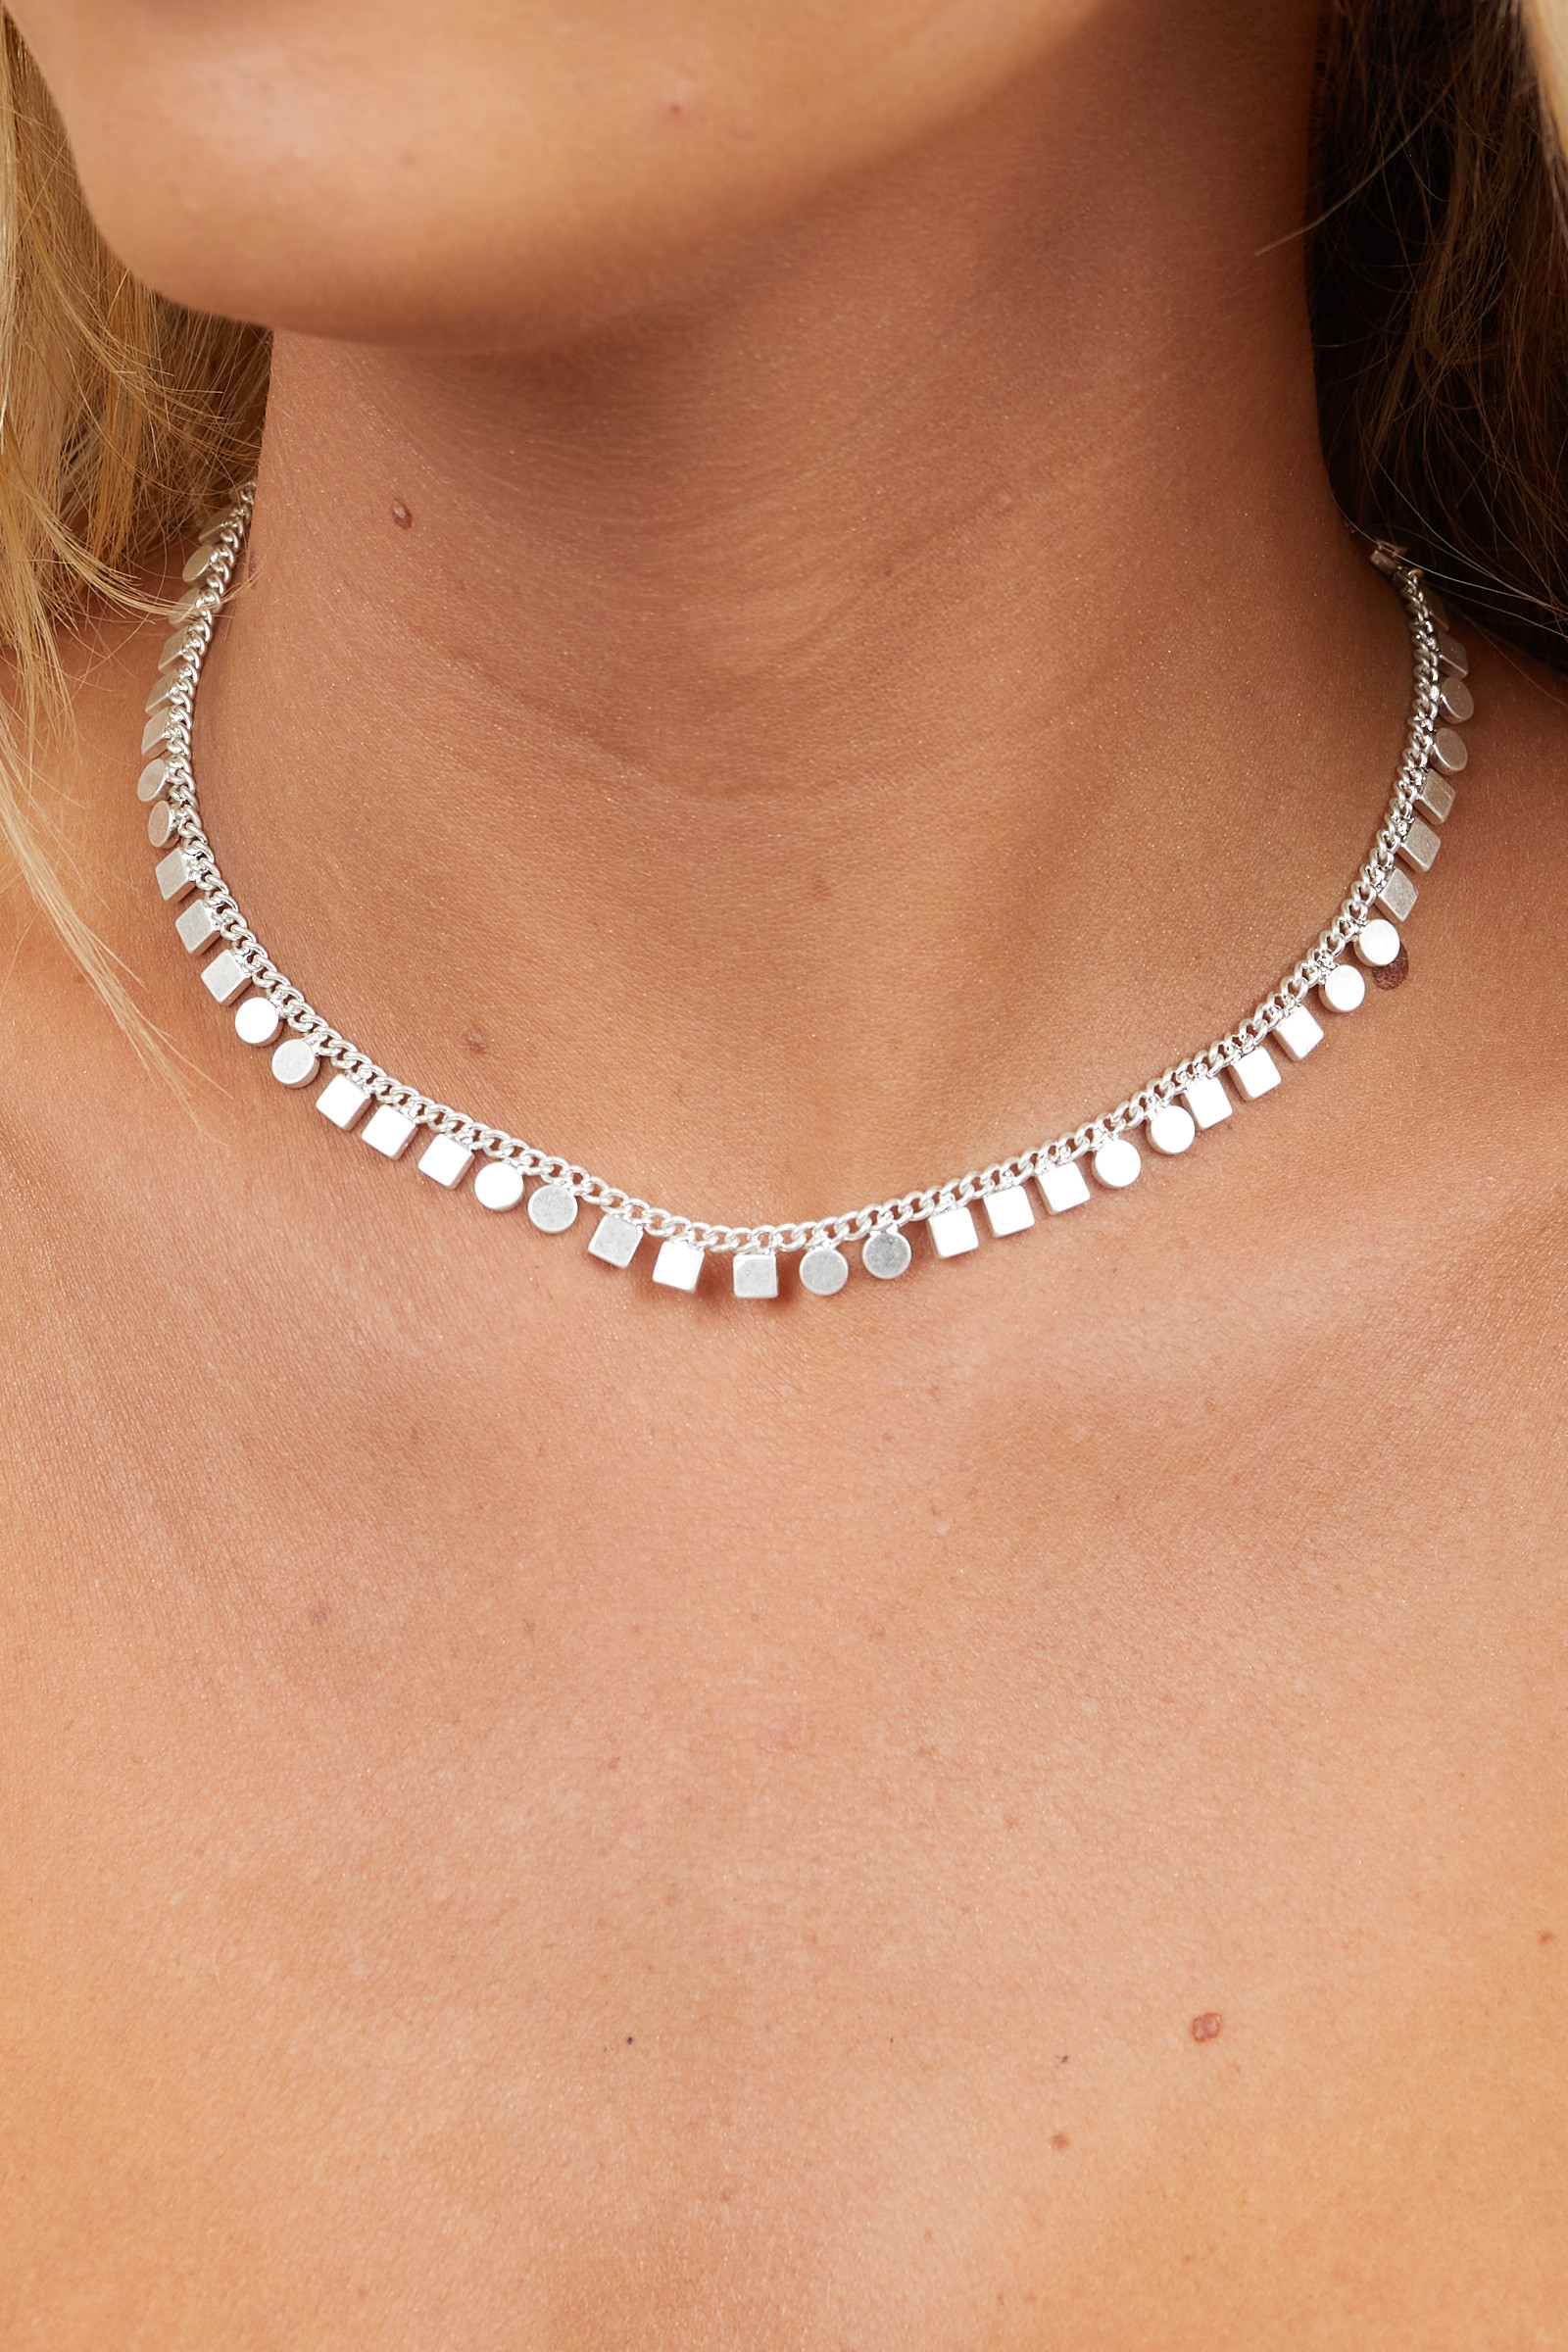 Brushed Silver Choker Necklace with Geometric Charms